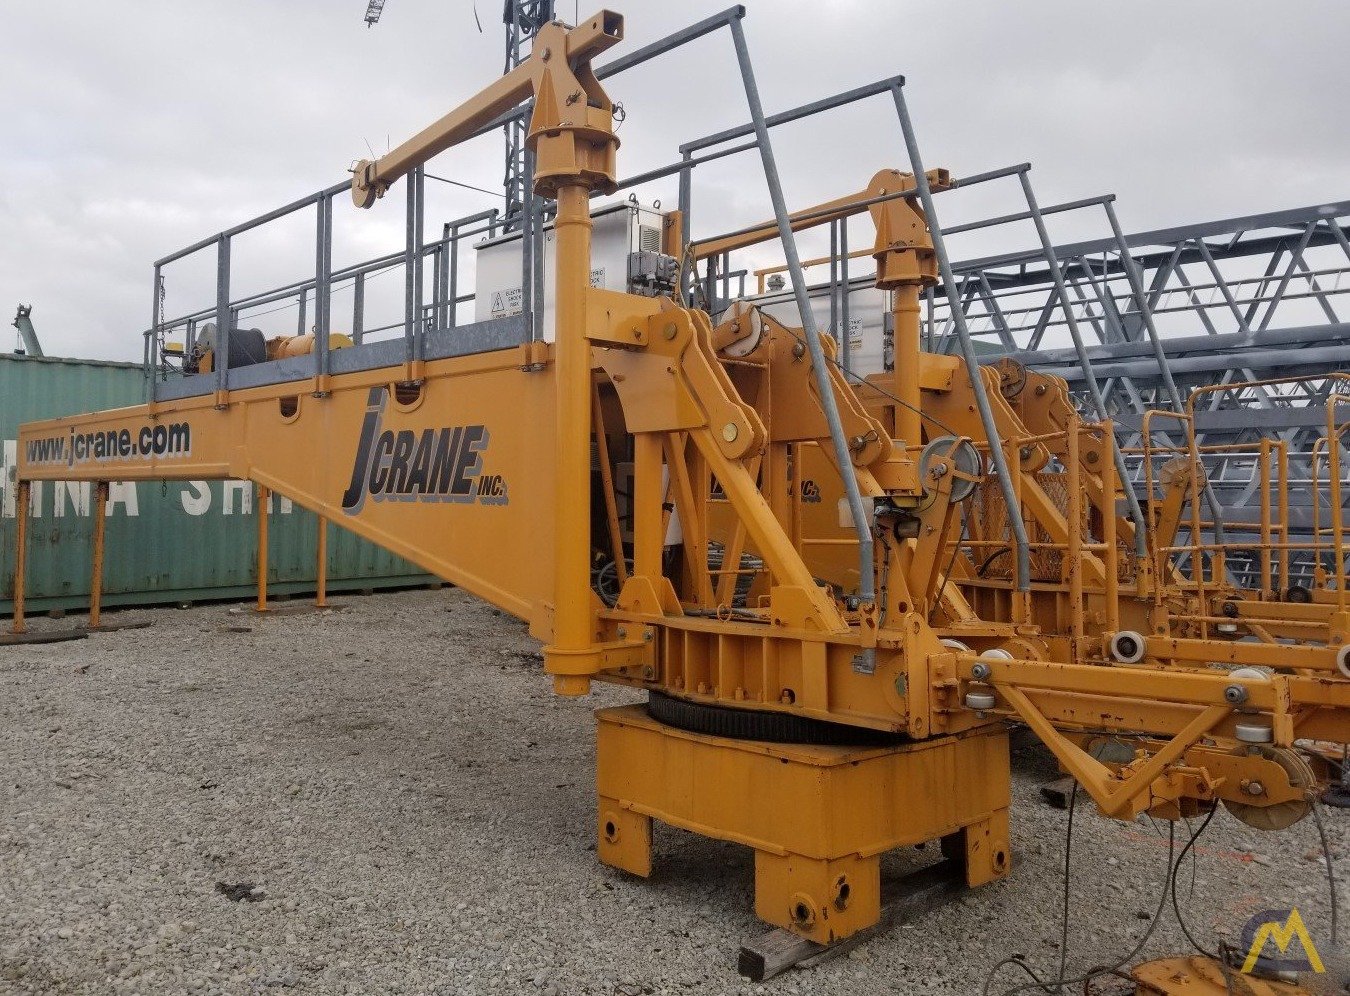 (2) San Marco SMT 520 Flat Top Tower cranes starting at $200,000 USD 2